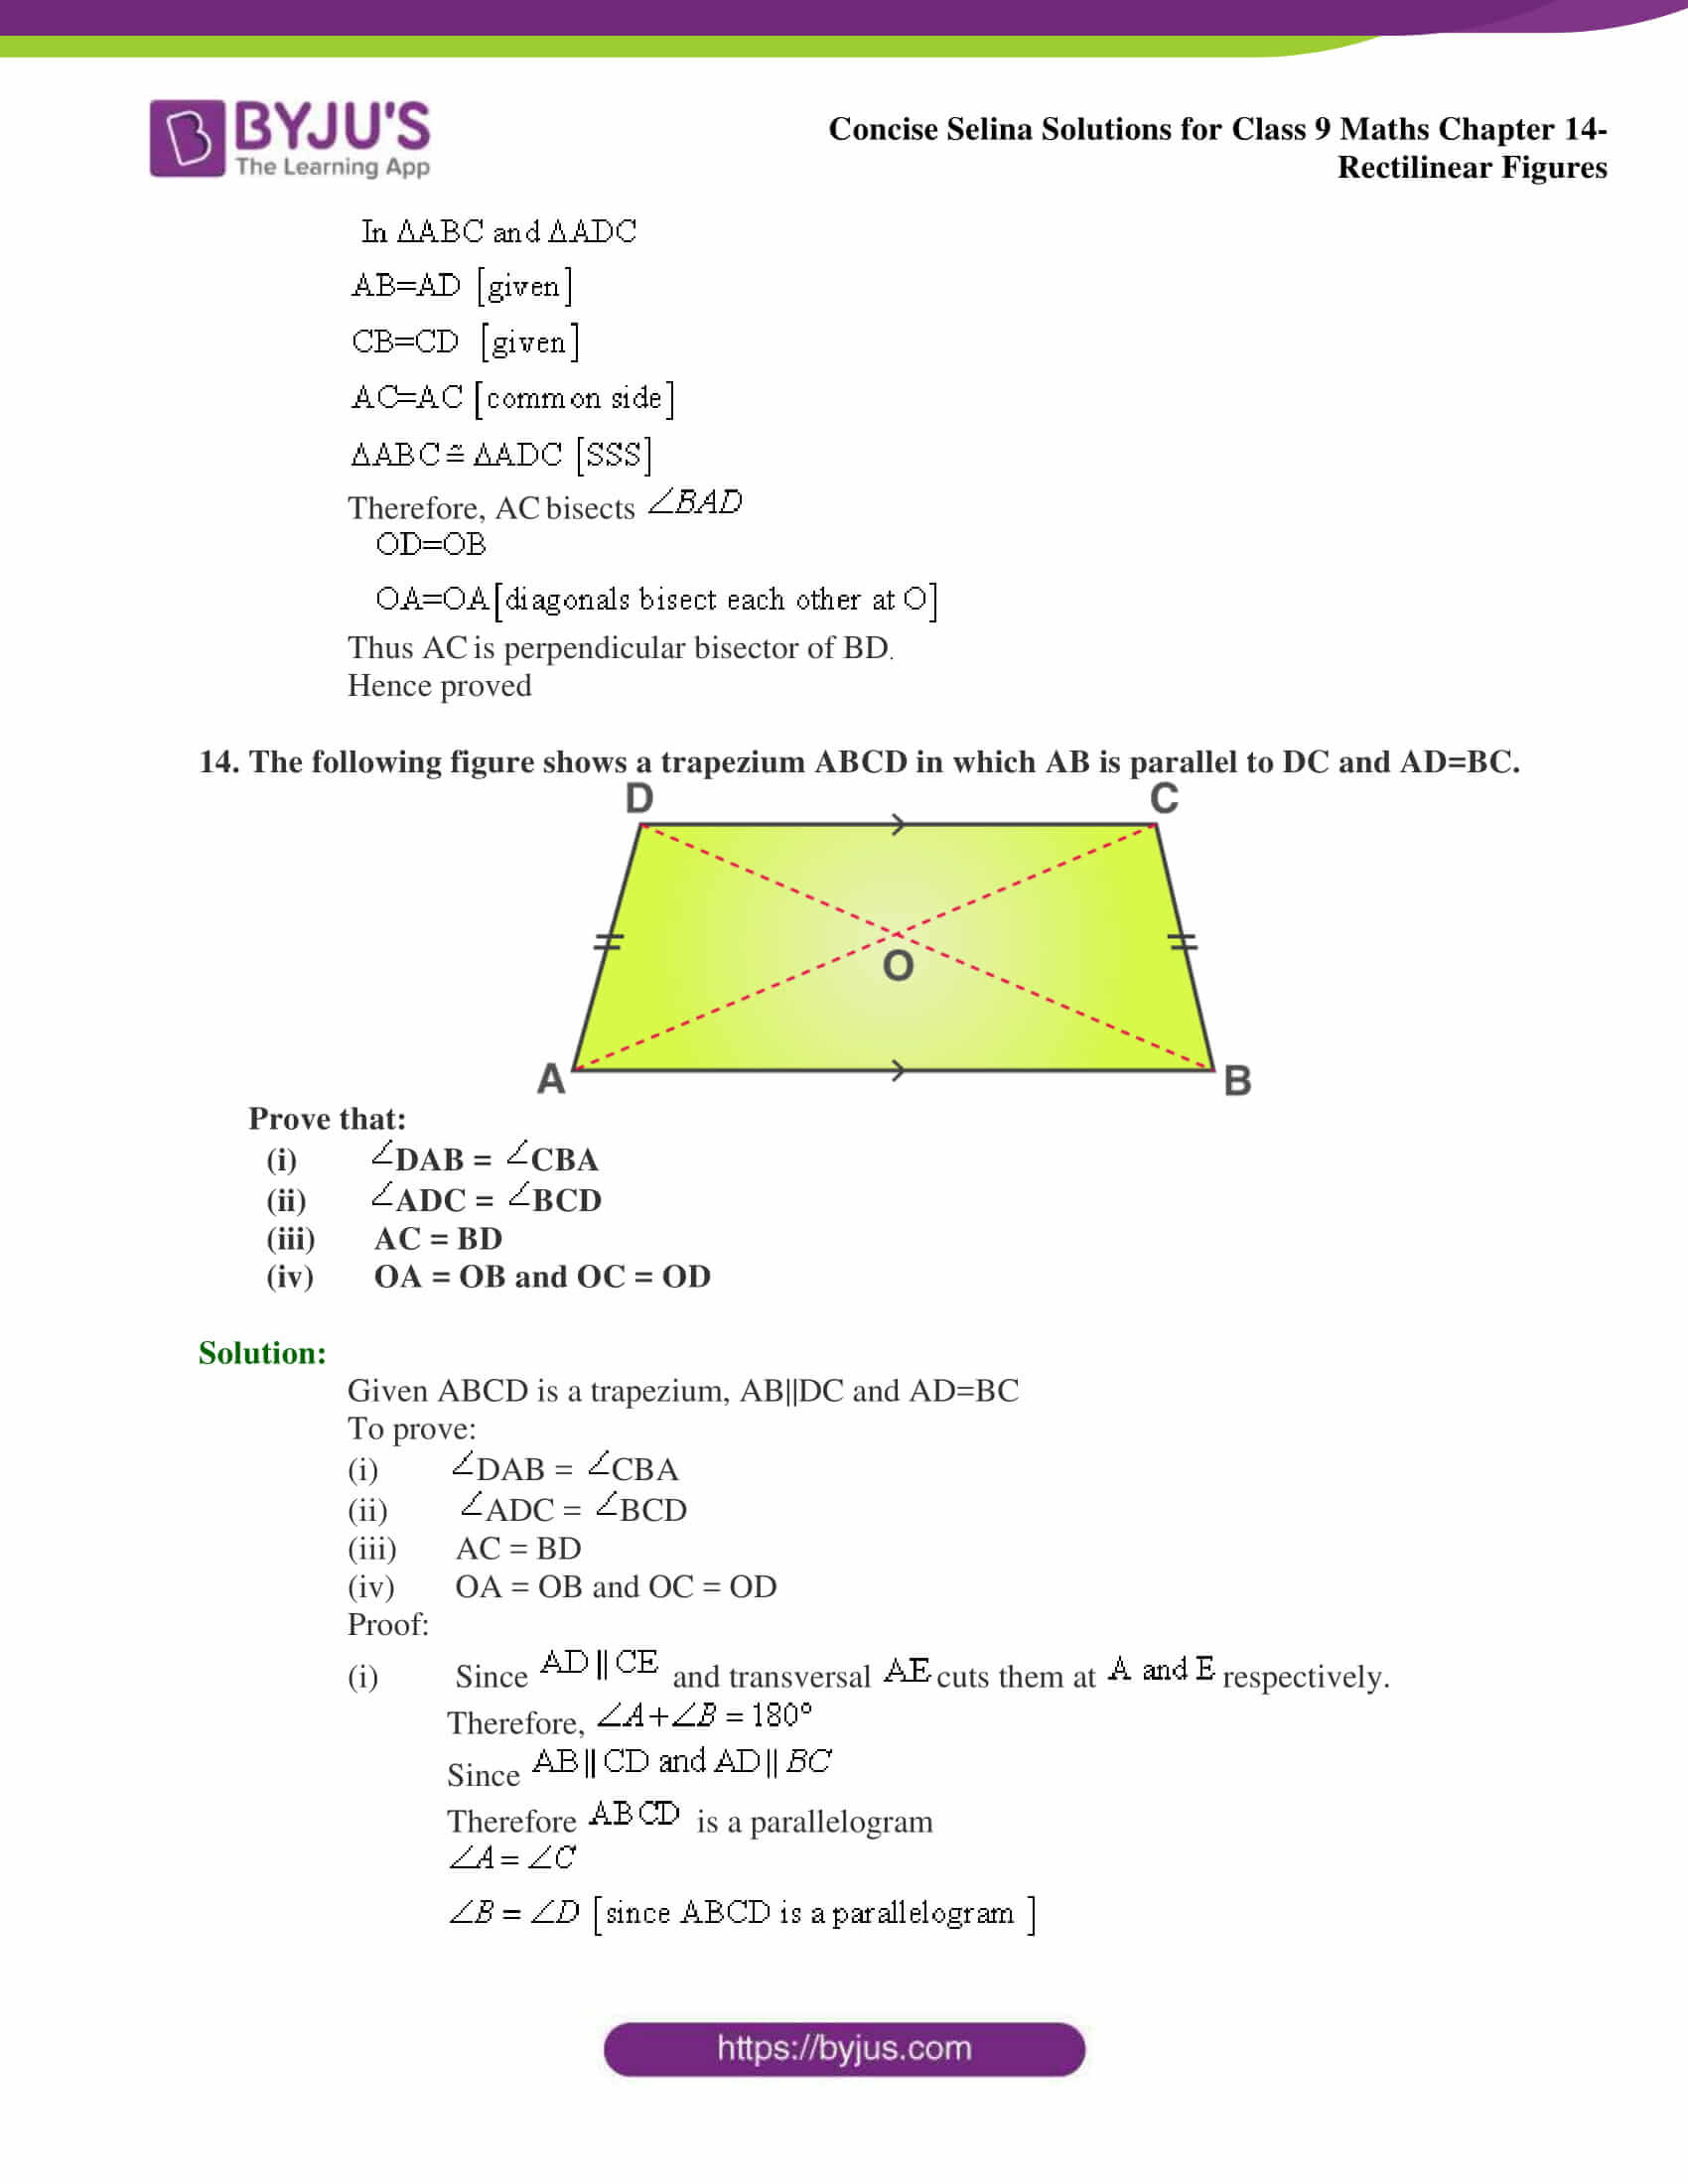 selina Solutions for Class 9 Maths Chapter 14 part 28